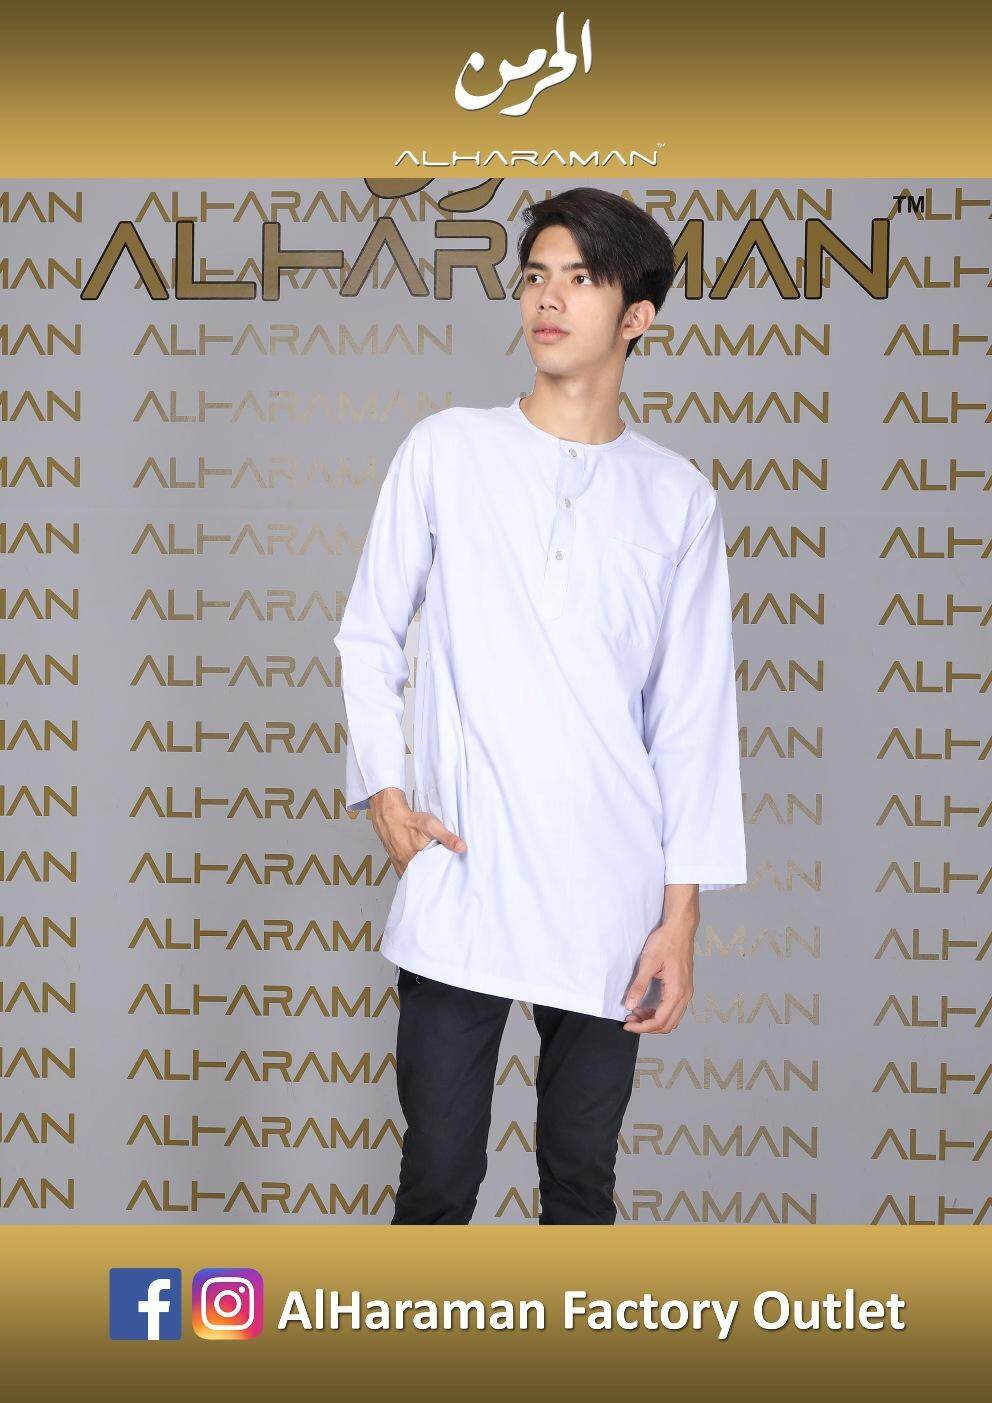 Al-Haraman Kurta Linen Button White Baju Raya No Collar